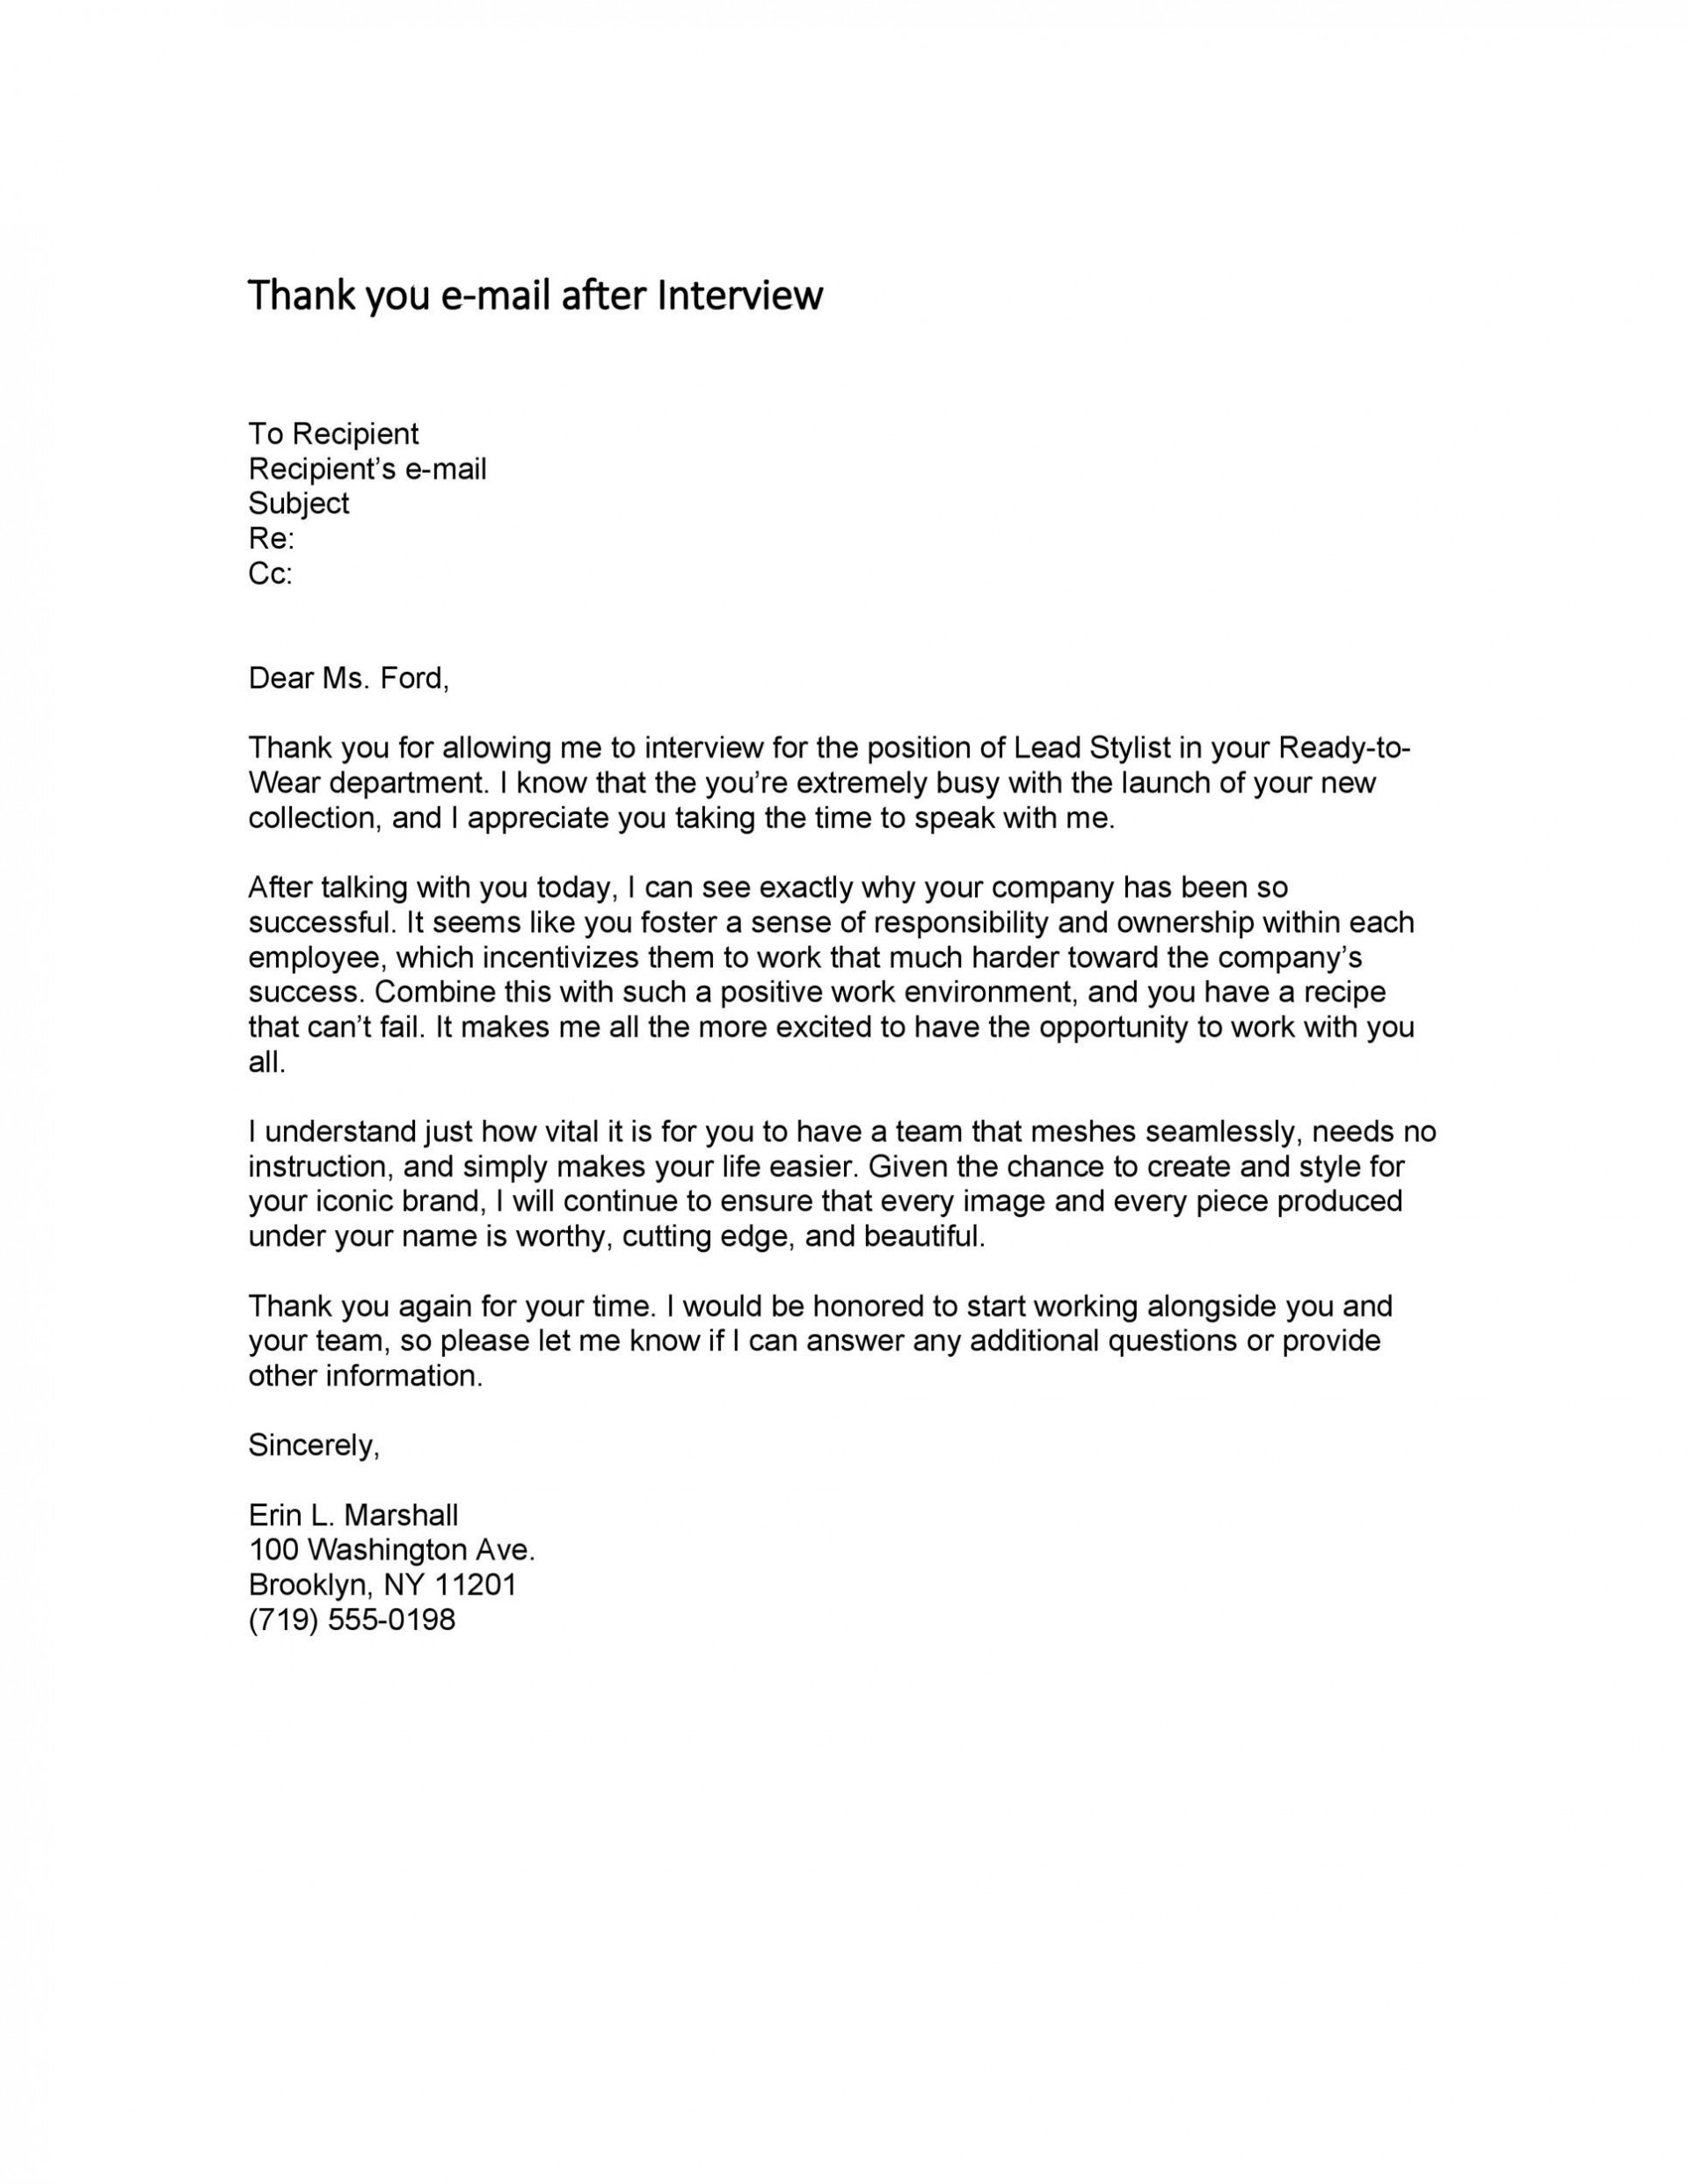 006 Staggering Thank You Note Template Interview Sample  Letter After Example Job Residency1920